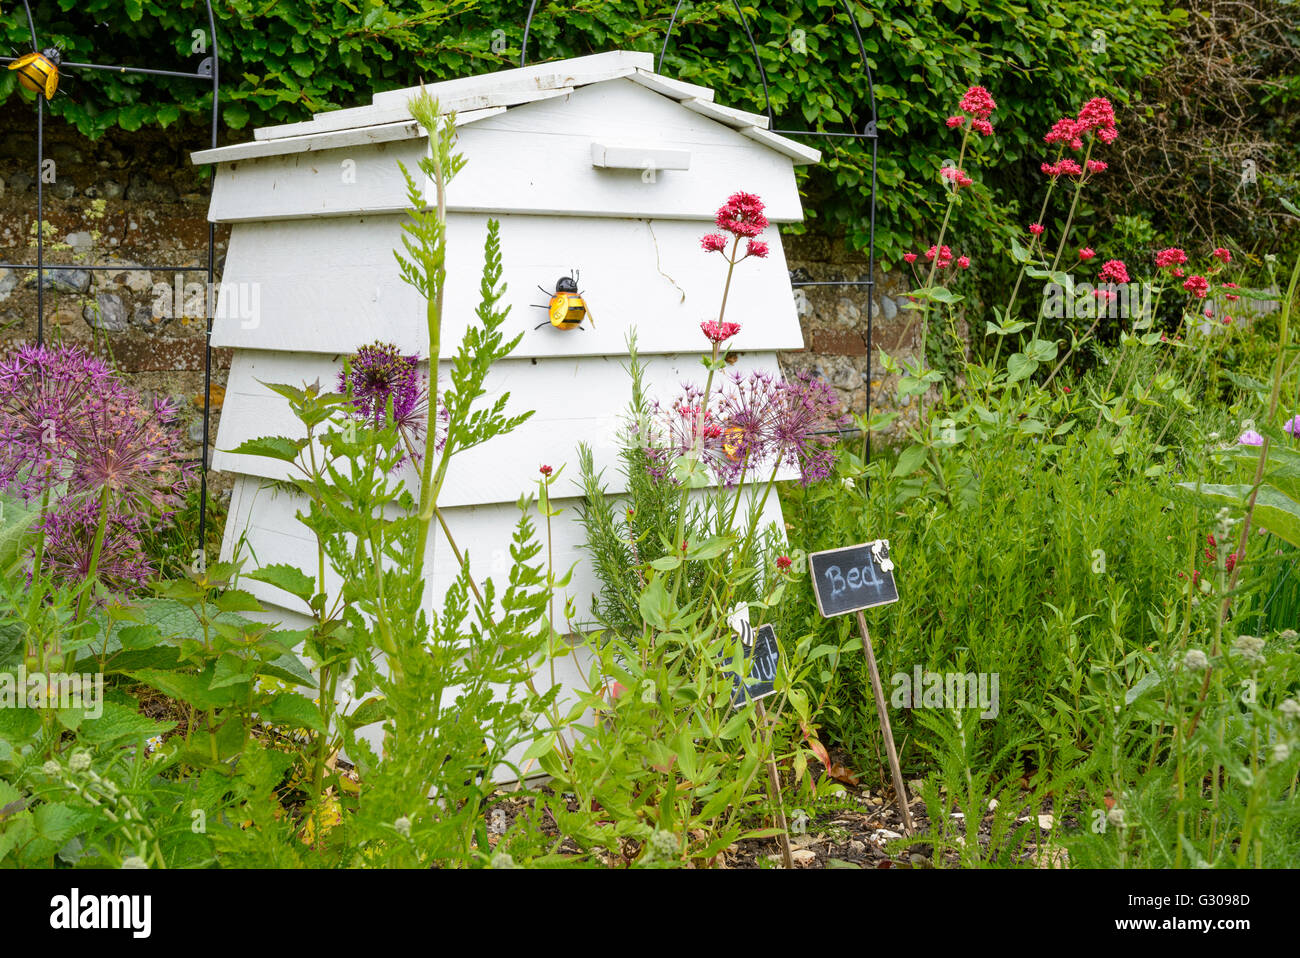 White wooden beehive in a garden. - Stock Image